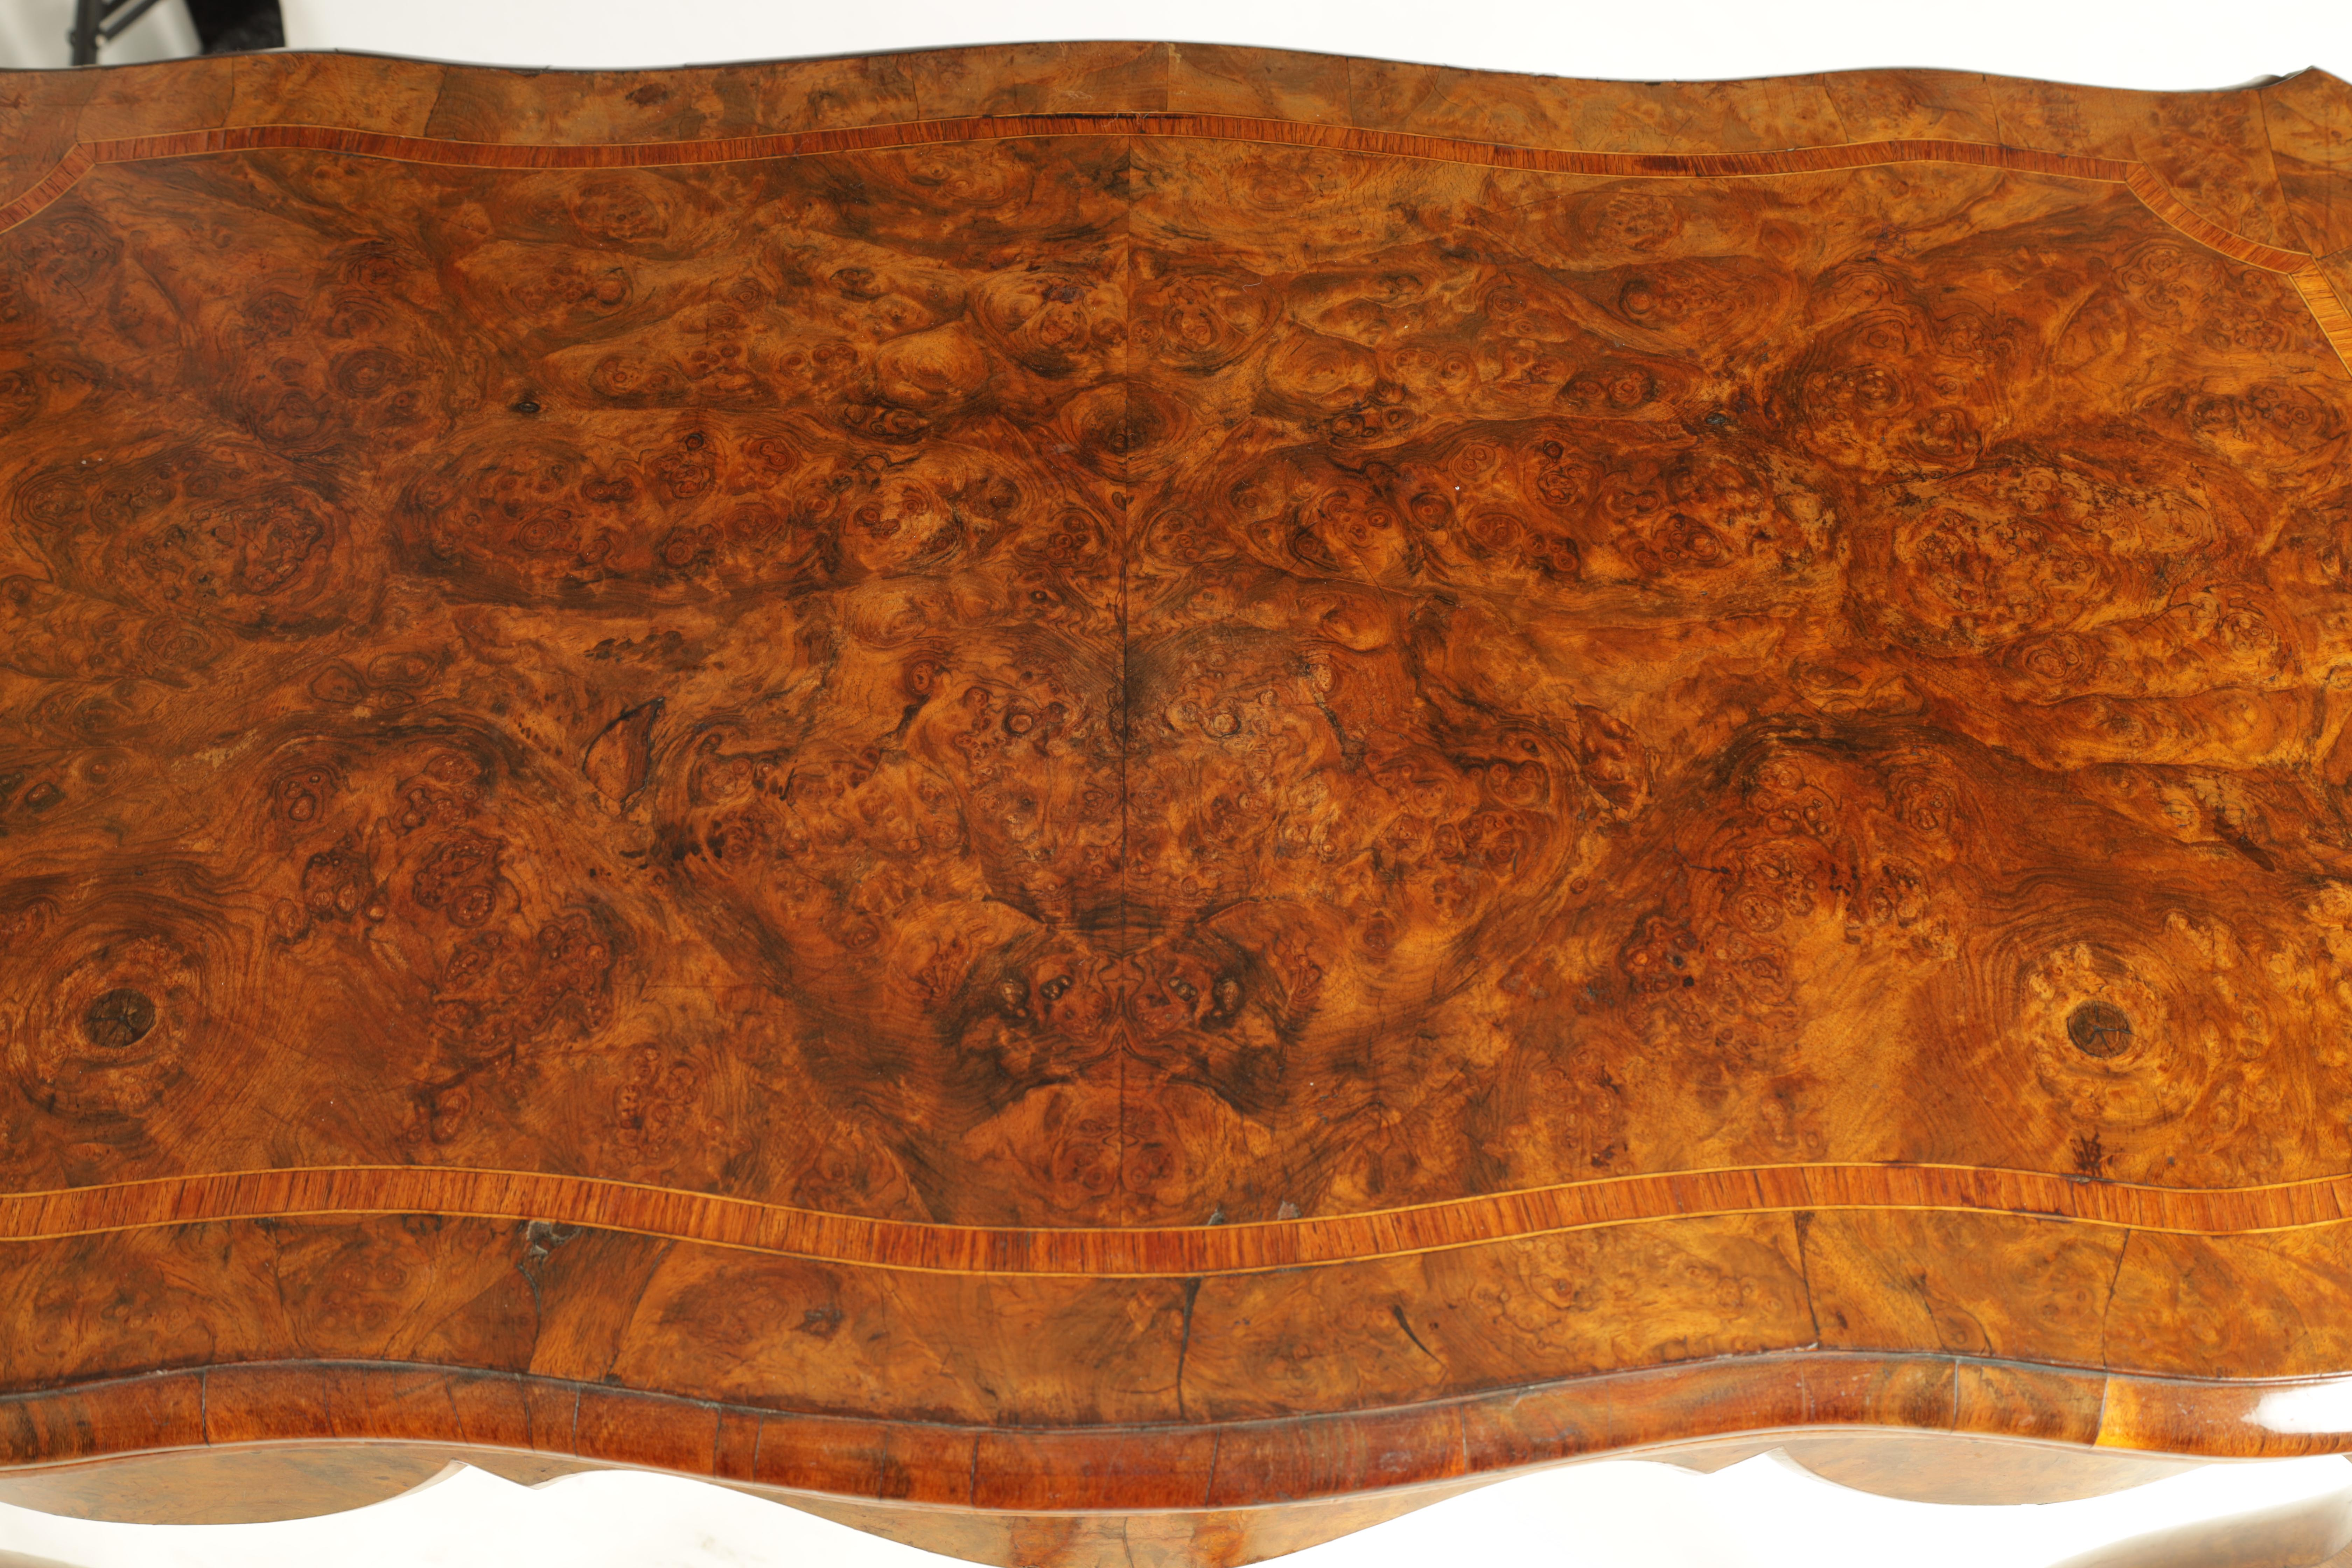 A 19TH CENTURY FRENCH KINGWOOD CROSS-BANDED BURR WALNUT SERPENTINE CARD TABLE with ormolu mounts and - Image 4 of 13